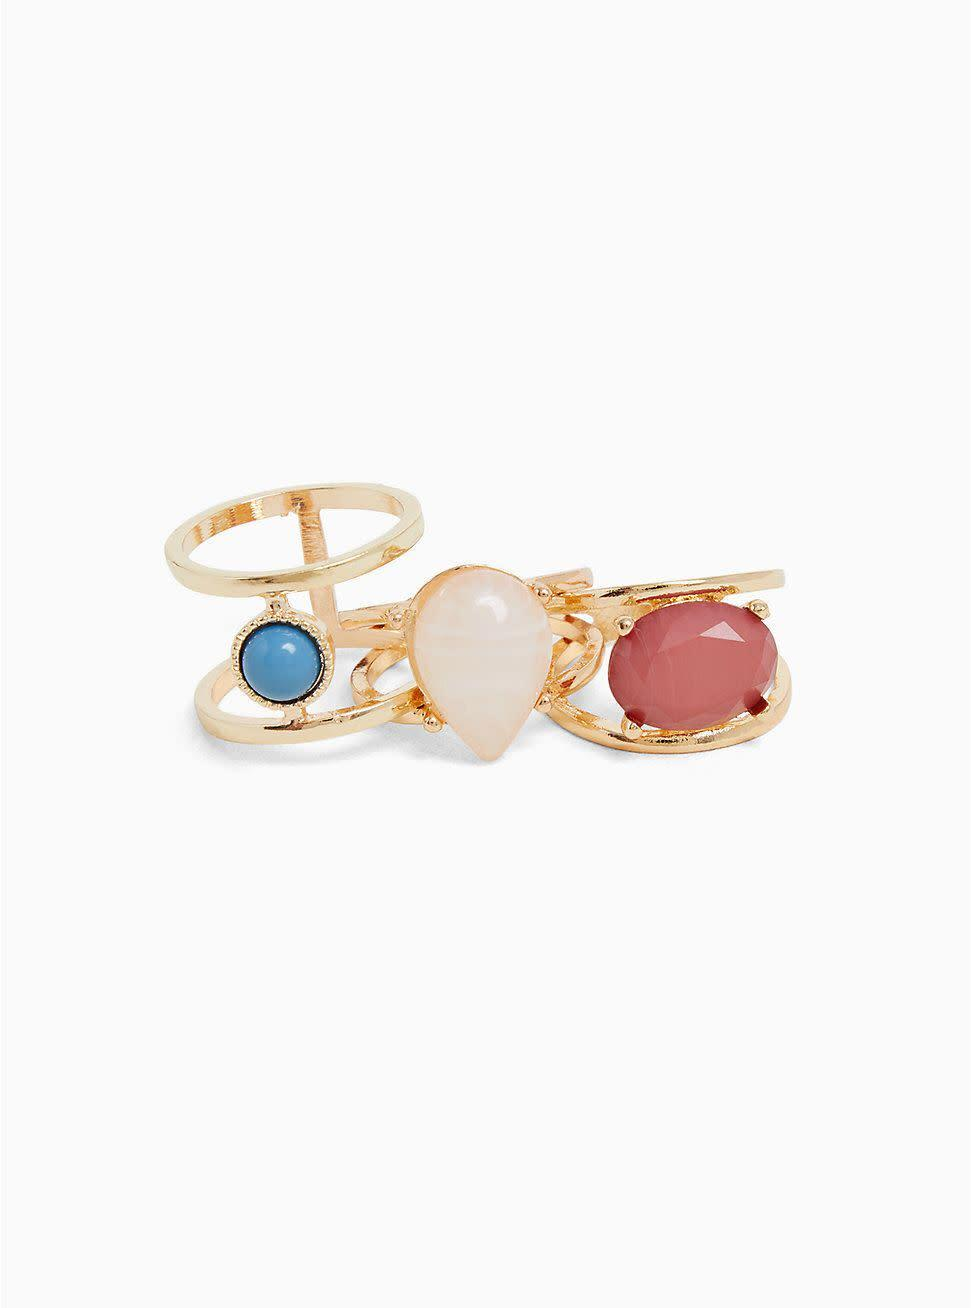 "Get the <a href=""https://www.torrid.com/product/multi-stone-ring---set-of-3/11921523.html?cgid=ShoesAccessories_Jewelry_Rings#start=17"" rel=""nofollow noopener"" target=""_blank"" data-ylk=""slk:Torrid multi stone ring 3-pack, available in sizes 9-12, for $14.90"" class=""link rapid-noclick-resp"">Torrid multi stone ring 3-pack, available in sizes 9-12, for $14.90</a>"